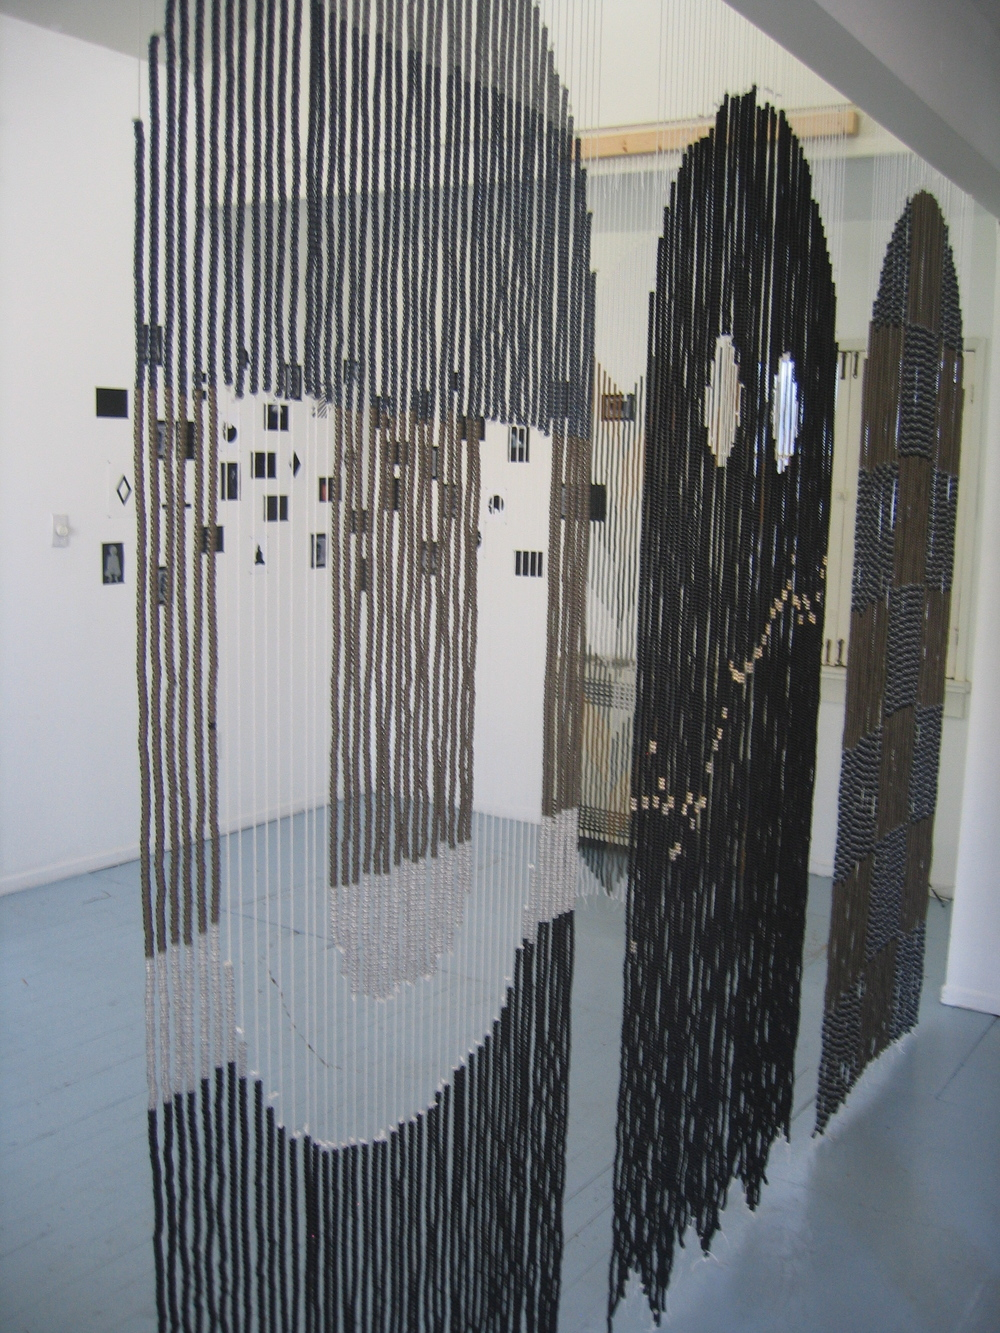 "Rico Gatson and Ellie Murphy, Pac Man at ACP, 2009, Beads, nylon, wood, hardware, Gaffers tape, paper, paint, pencil, glitter and images, 5 curtains, each 30 x 80"" (Installation detail)"